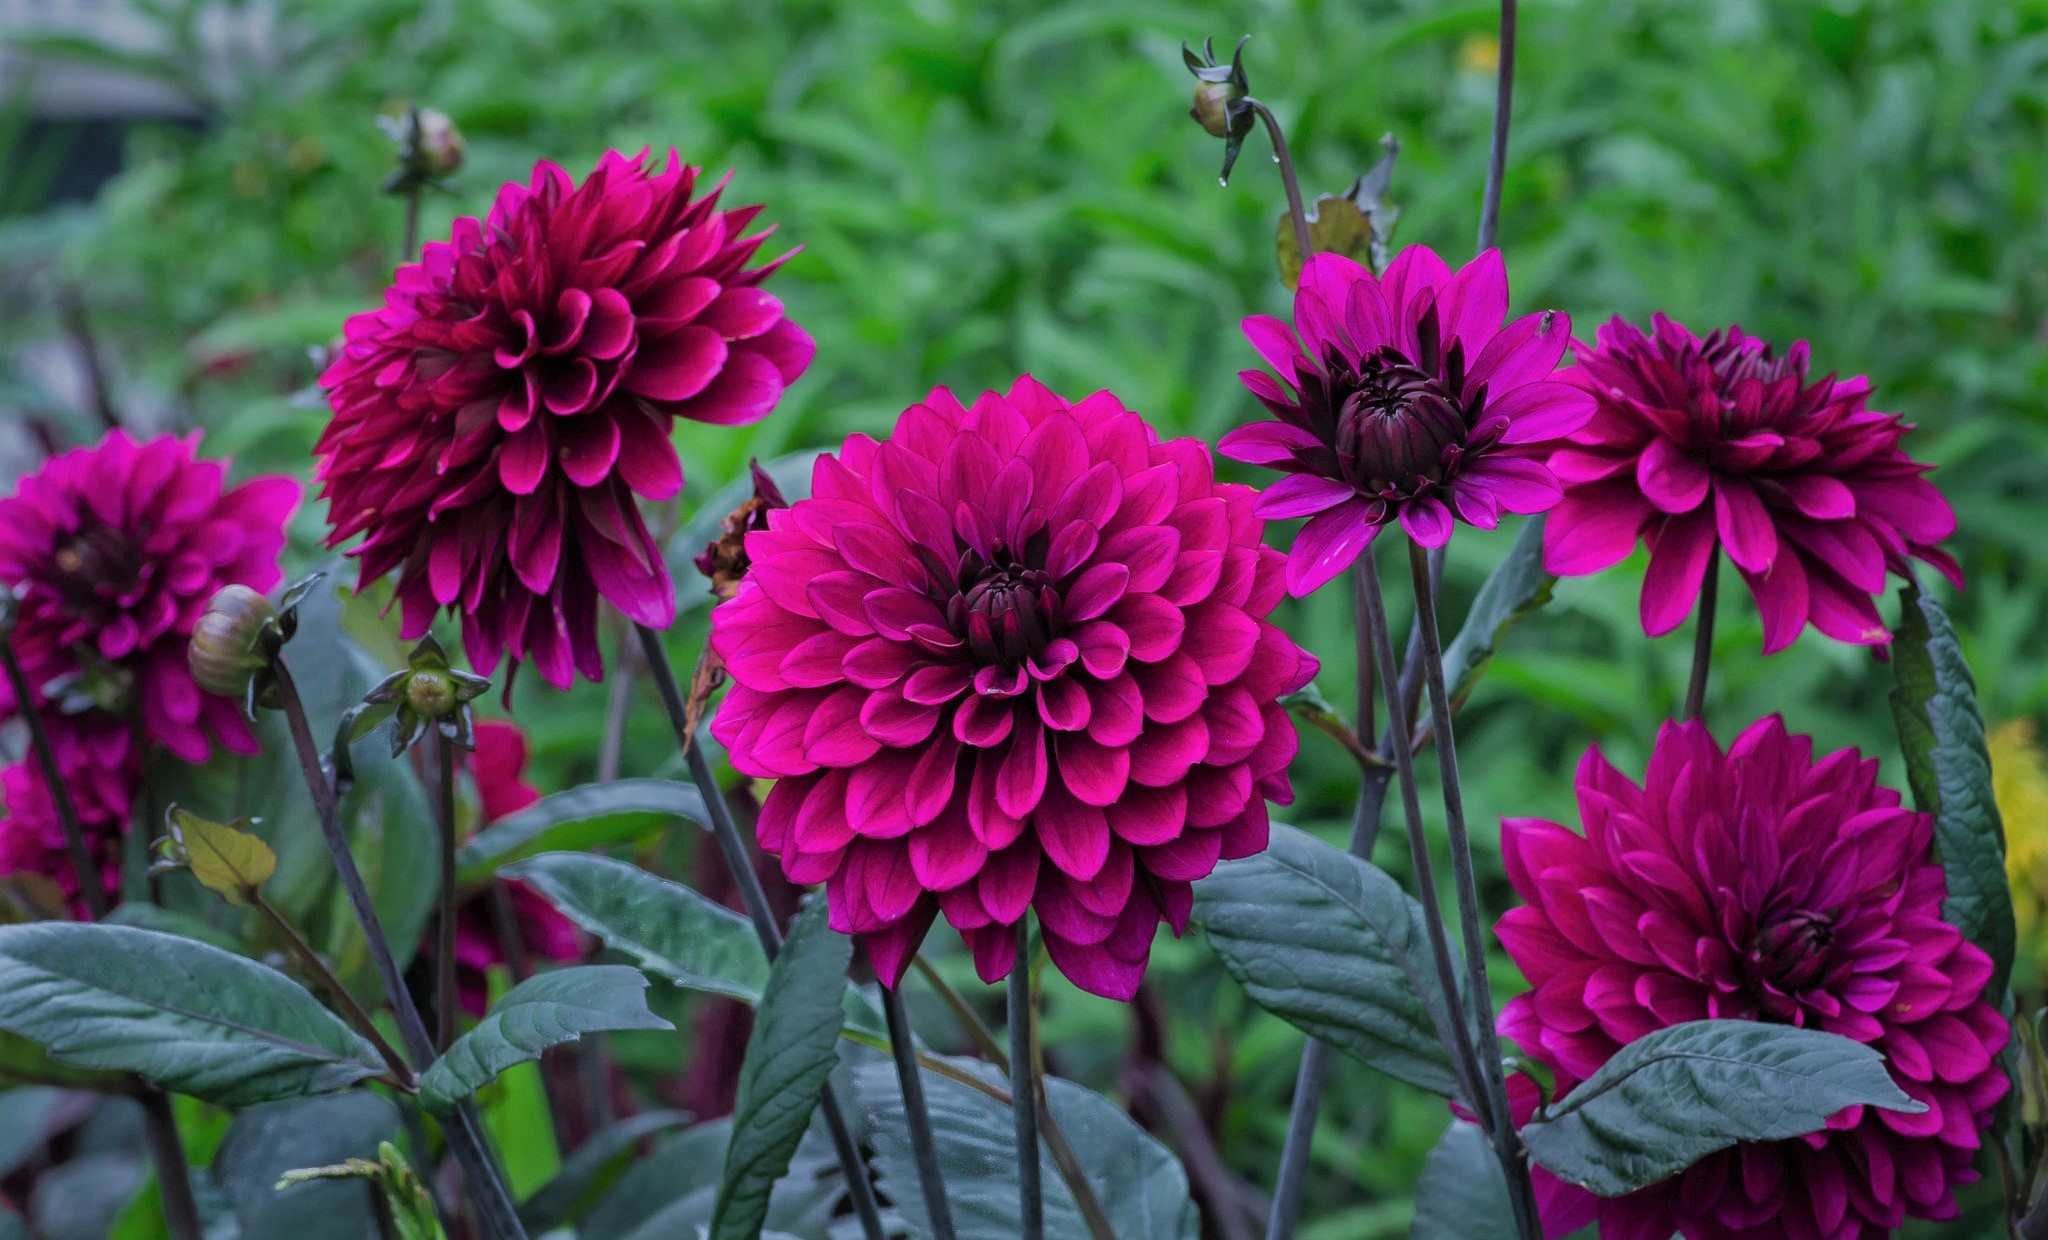 Purple Dahlias Full Hd Wallpaper And Background Image HD Wallpapers Download Free Images Wallpaper [1000image.com]